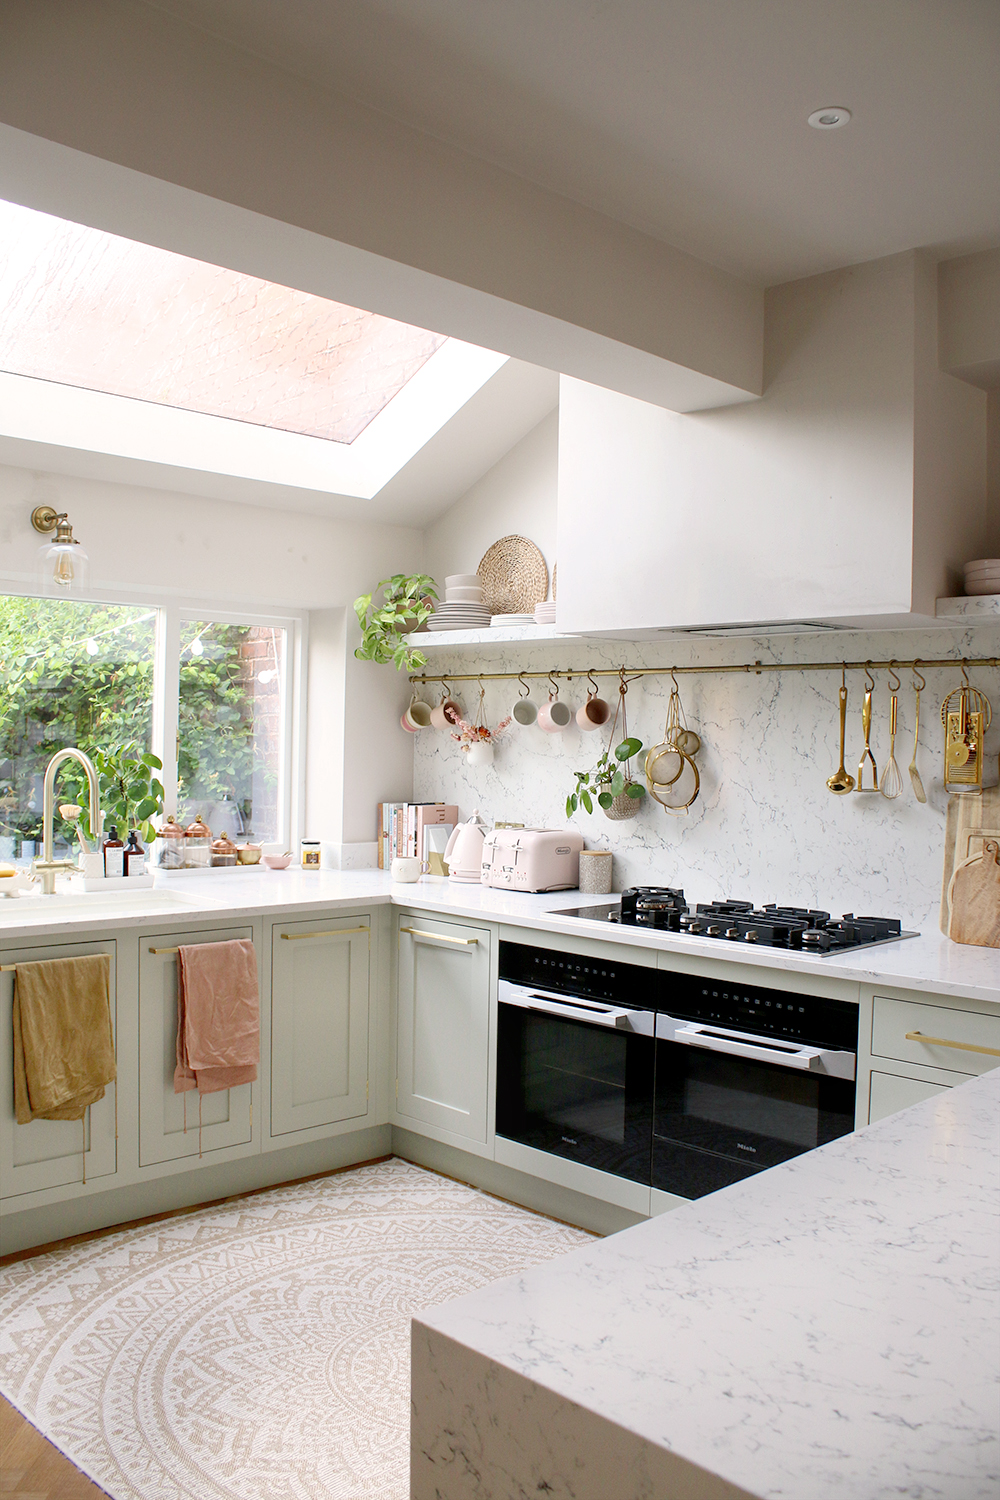 shaker kitchen in mizzle with rooflight